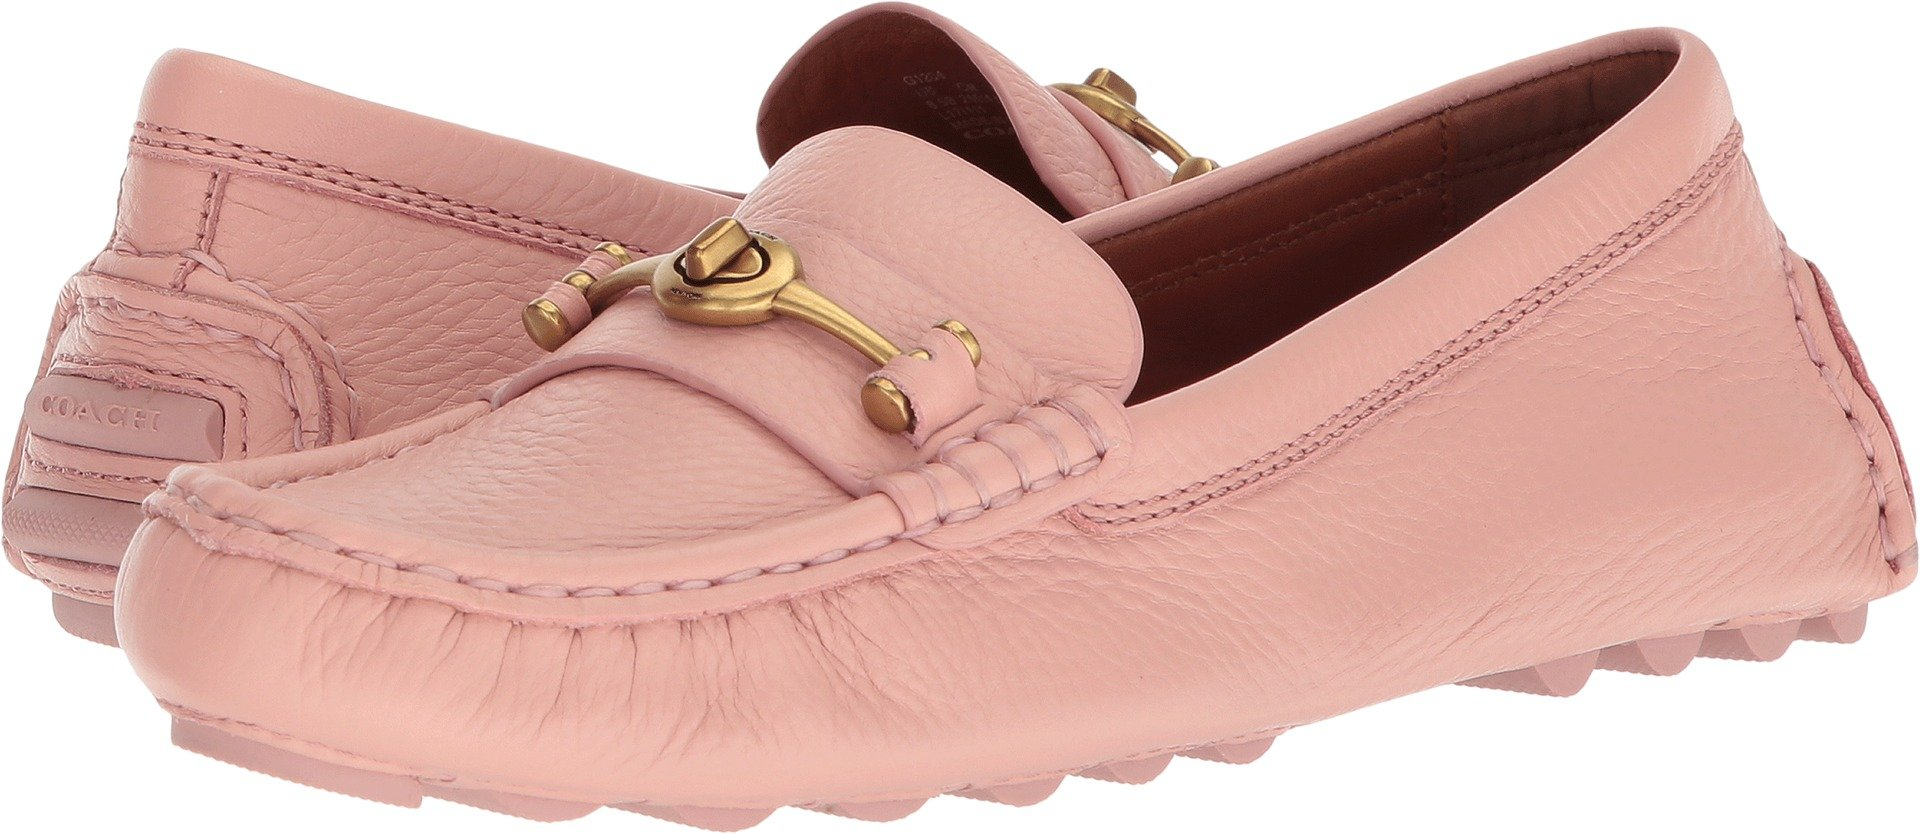 Coach Women's Crosby Driver Peony Leather 8 M US